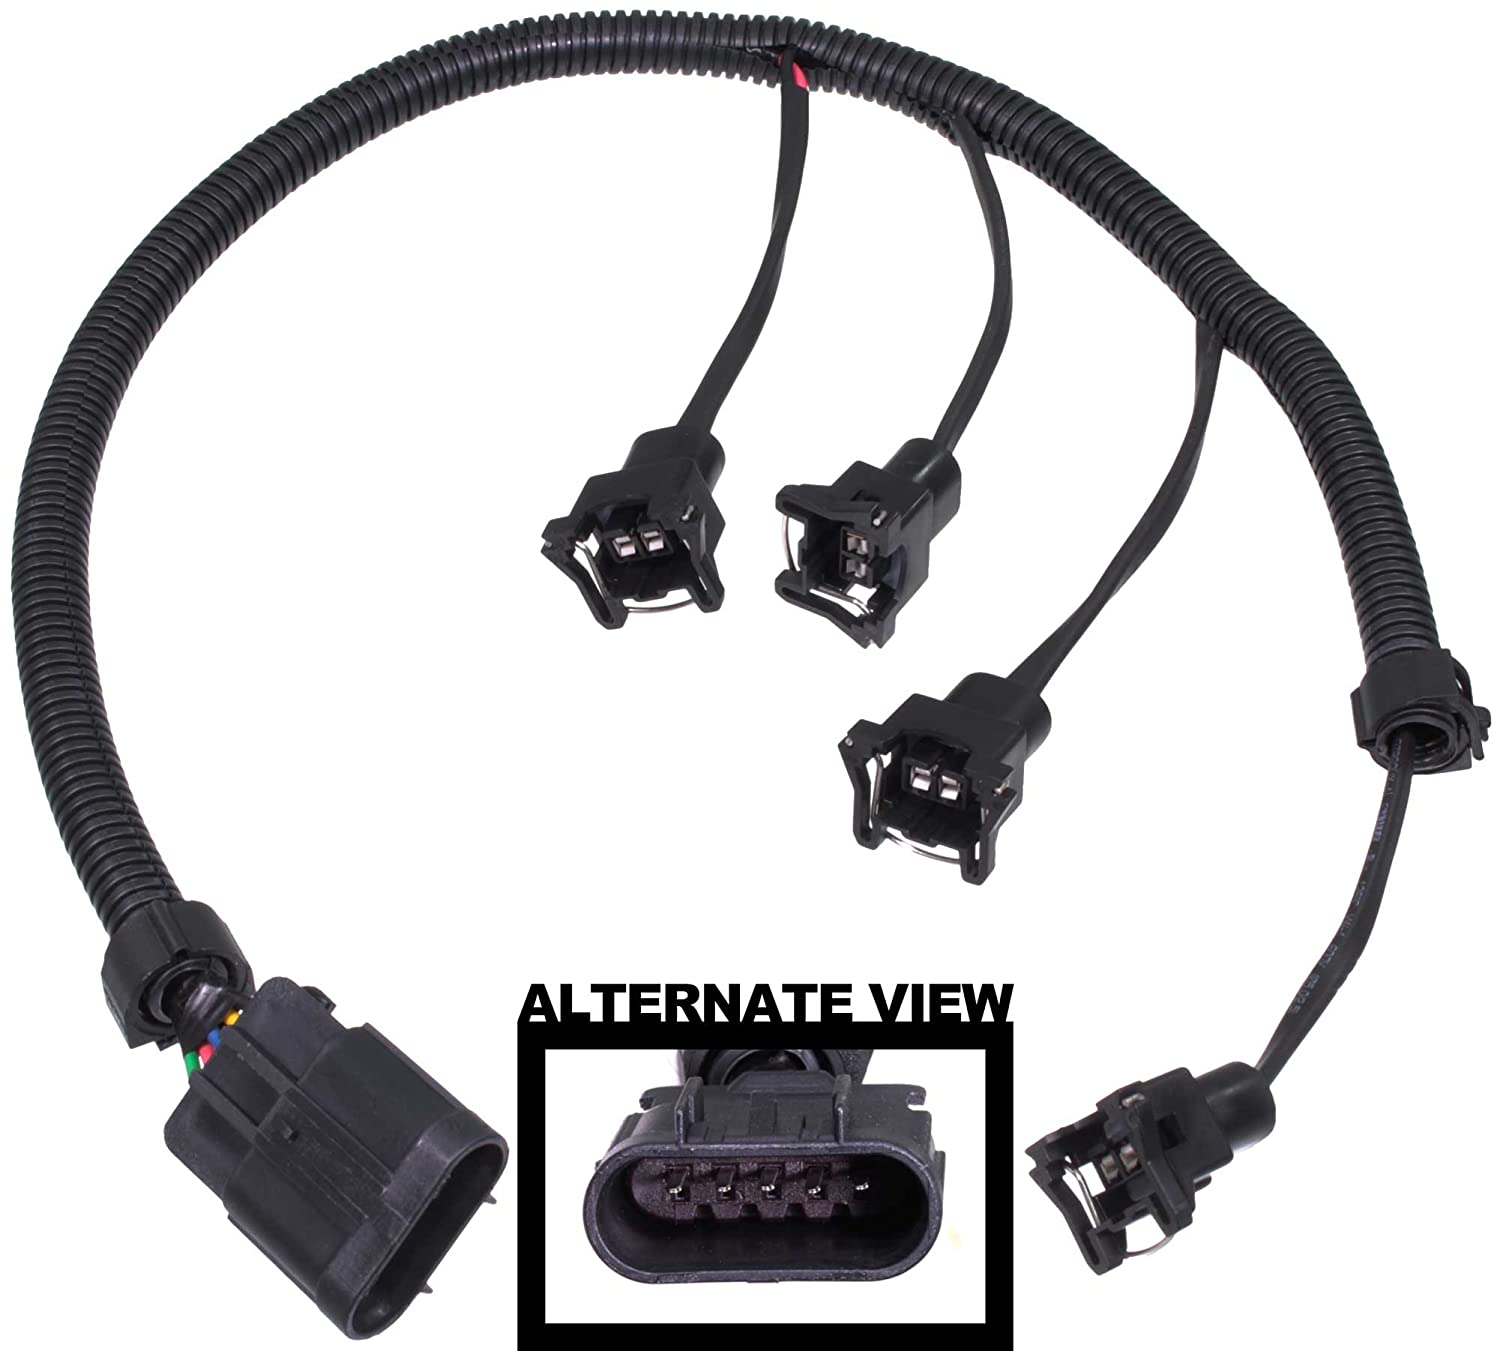 Amazon.com: APDTY 133624 Fuel Injector Wiring Harness Upgrade (Allows  Simple Upgrade Of The 2.0L LSJ Ecotec Turbo Engine To Use High Flow EV1  EV-1 Fuel ...